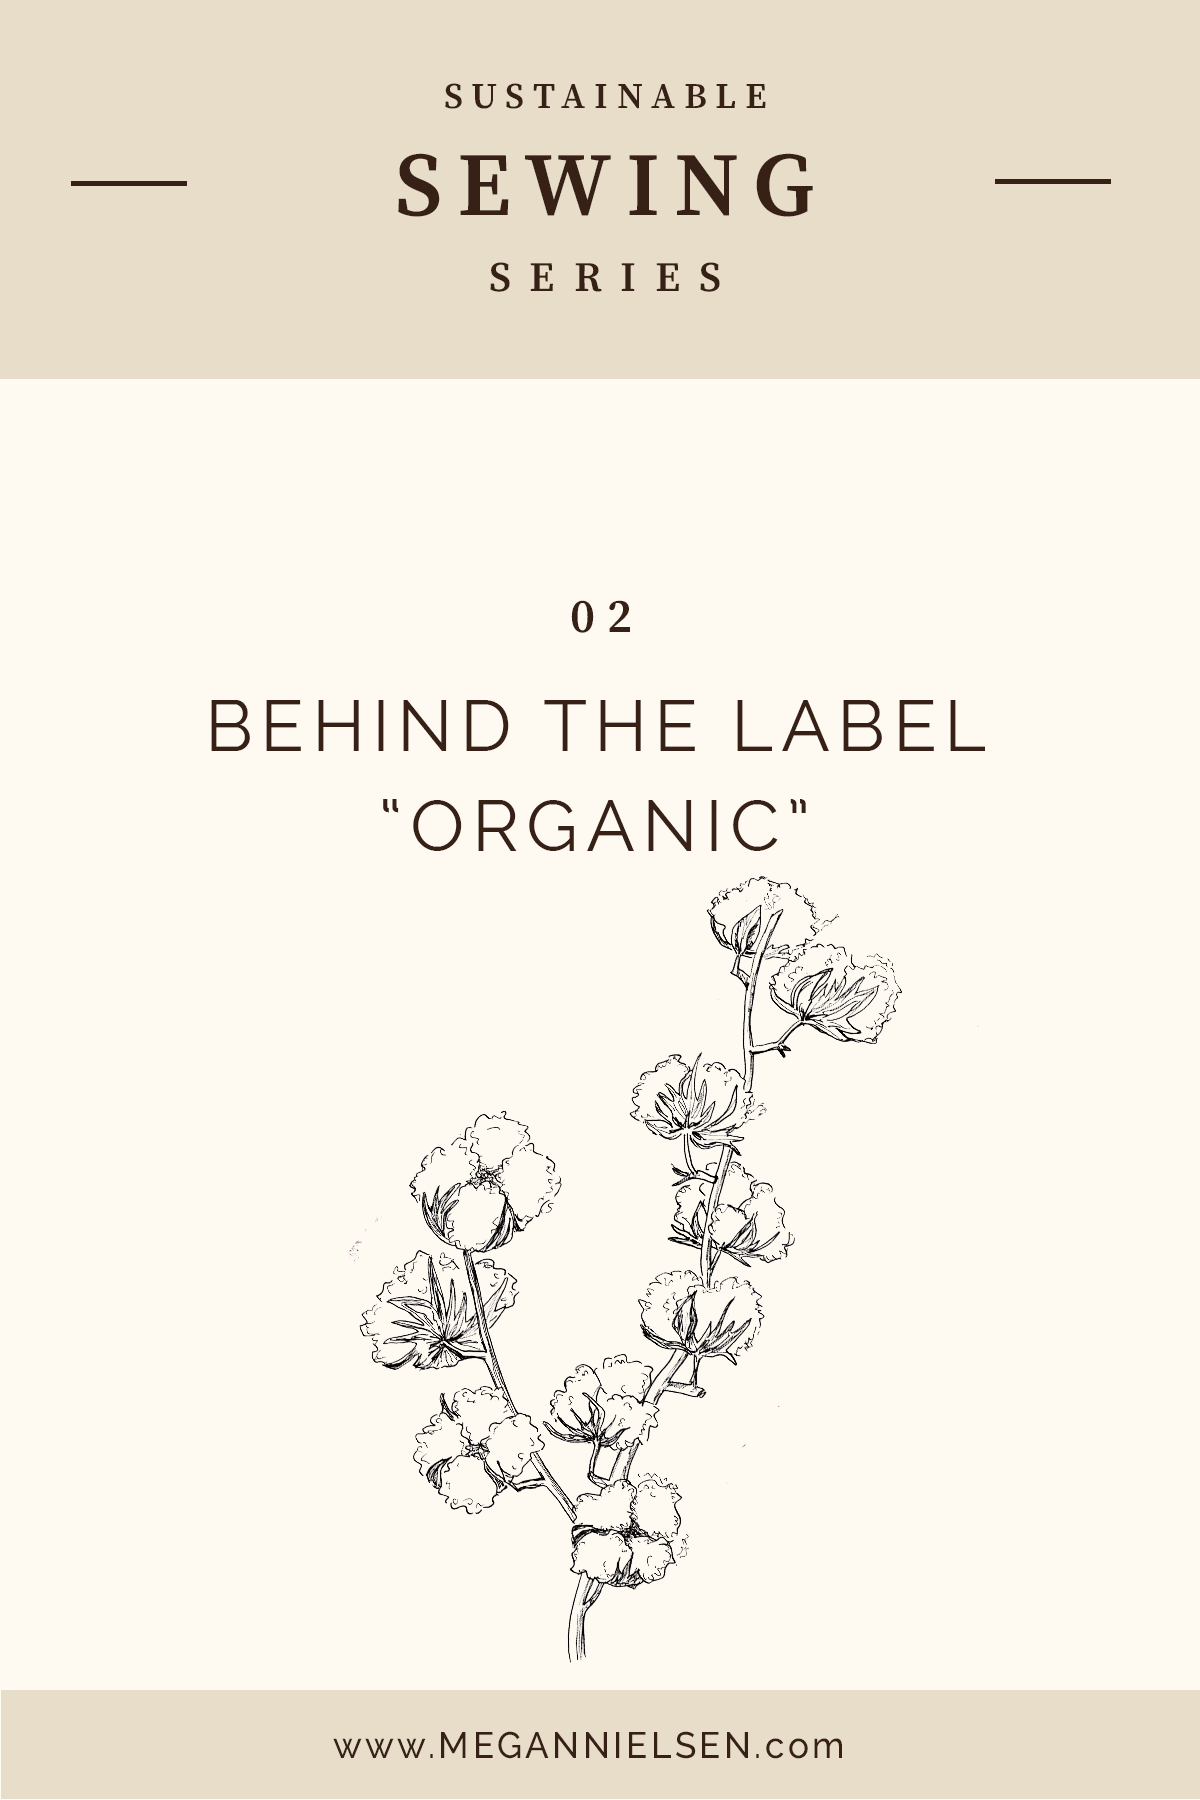 Behind the label: Organic // Sustainable sewing series on Megan Nielsen Design Diary